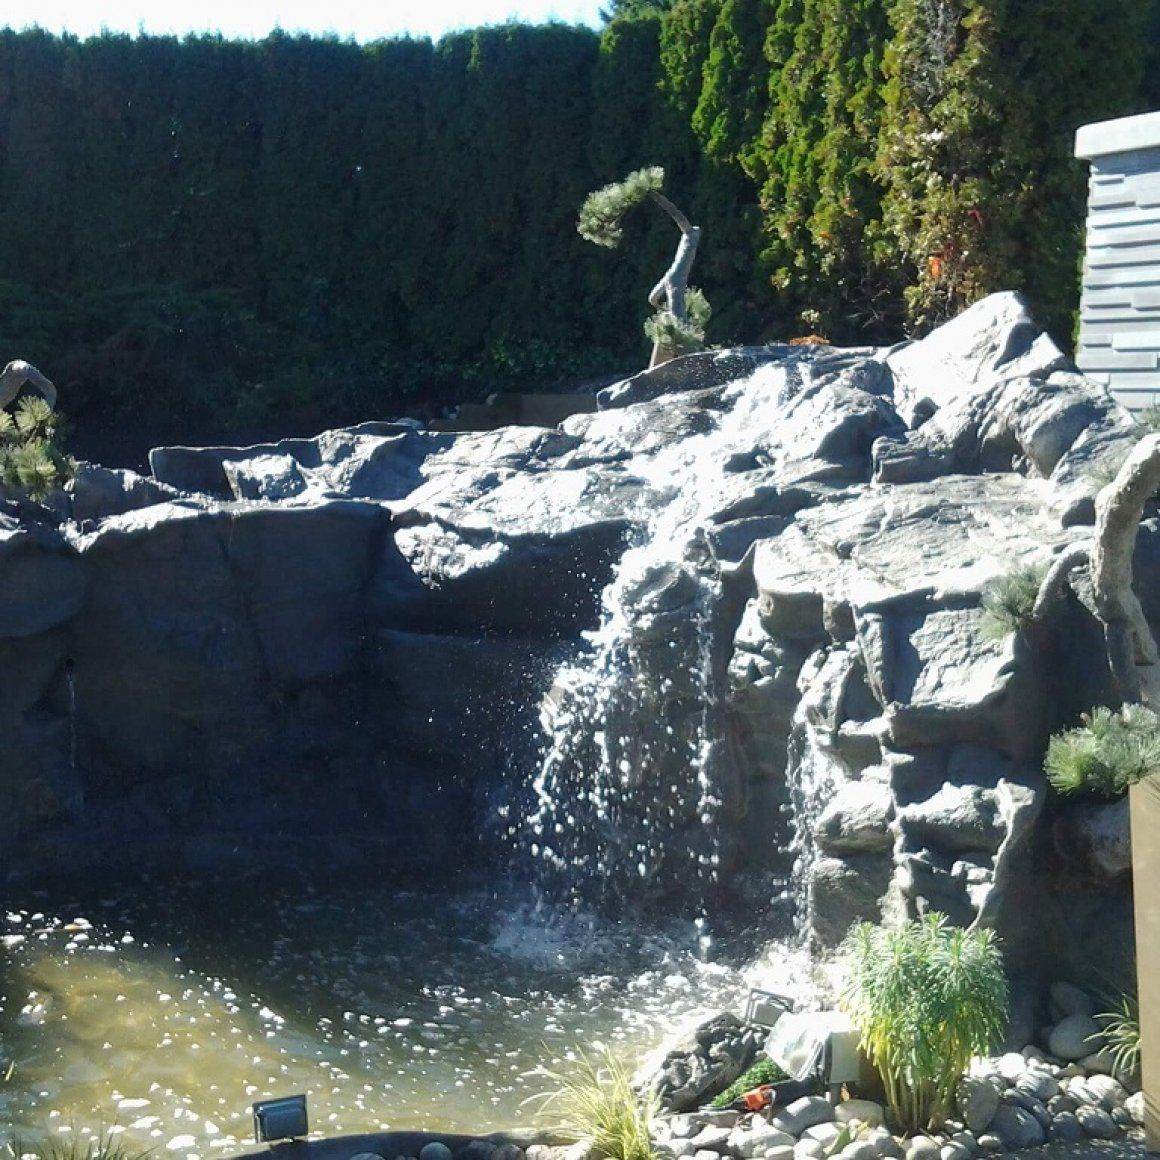 The Faux Rock Below Waterline Must Be Waterproofed With A Stone Texture Plaster Coat To Insure That Pool Will Not Leak